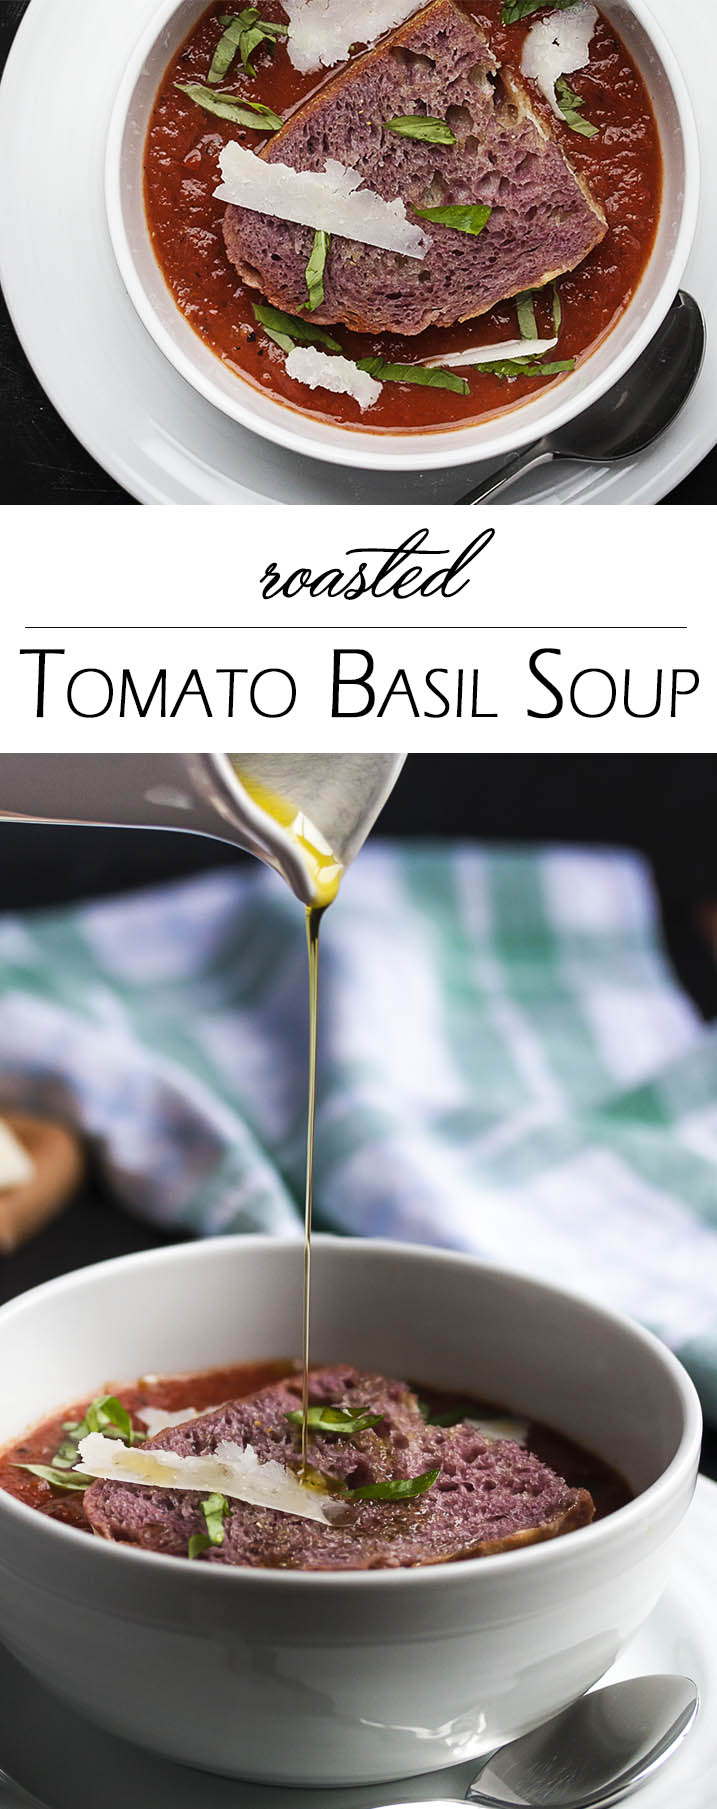 Roasted Tomato Basil Soup - Can you believe that this deep and full-flavored tomato basil soup started with canned tomatoes? It did! And it's awesome. Especially when paired with a yummy, wine-soaked crouton in the middle. The combo is one of our favorites. | justalittlebitofbacon.com